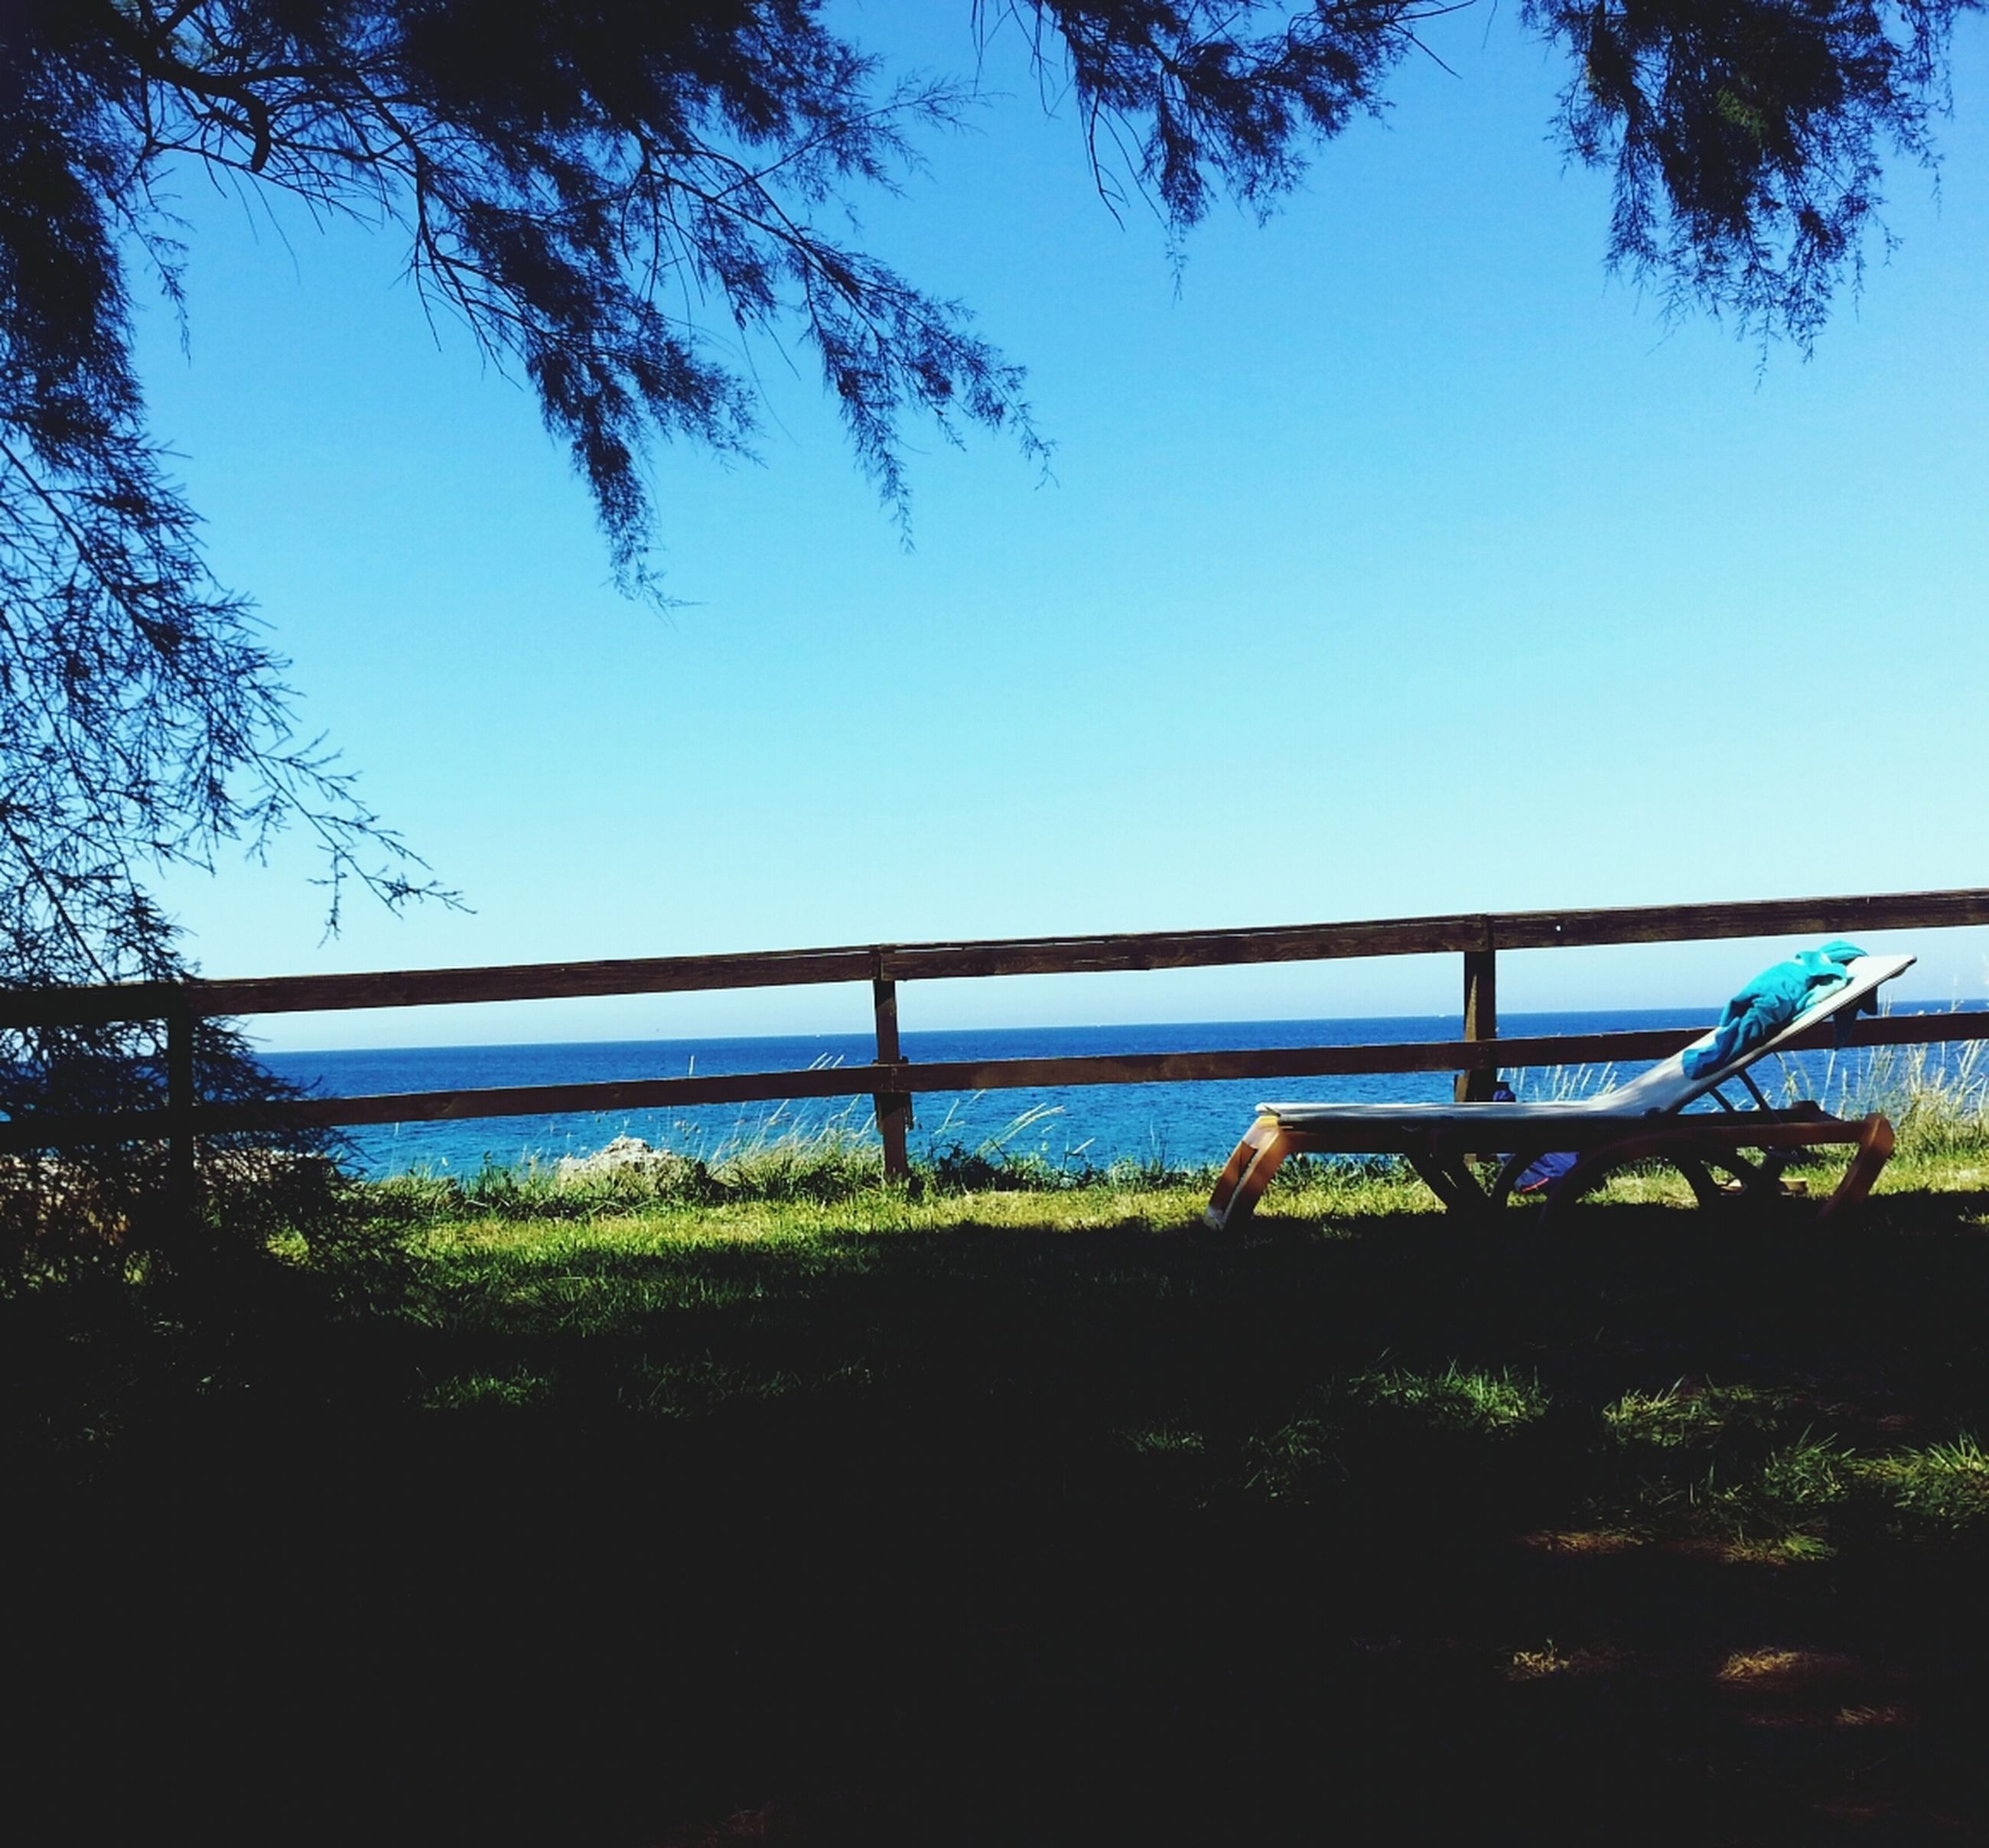 water, clear sky, tree, blue, copy space, tranquility, tranquil scene, nature, beauty in nature, sea, scenics, growth, sunlight, lake, plant, beach, outdoors, day, idyllic, railing